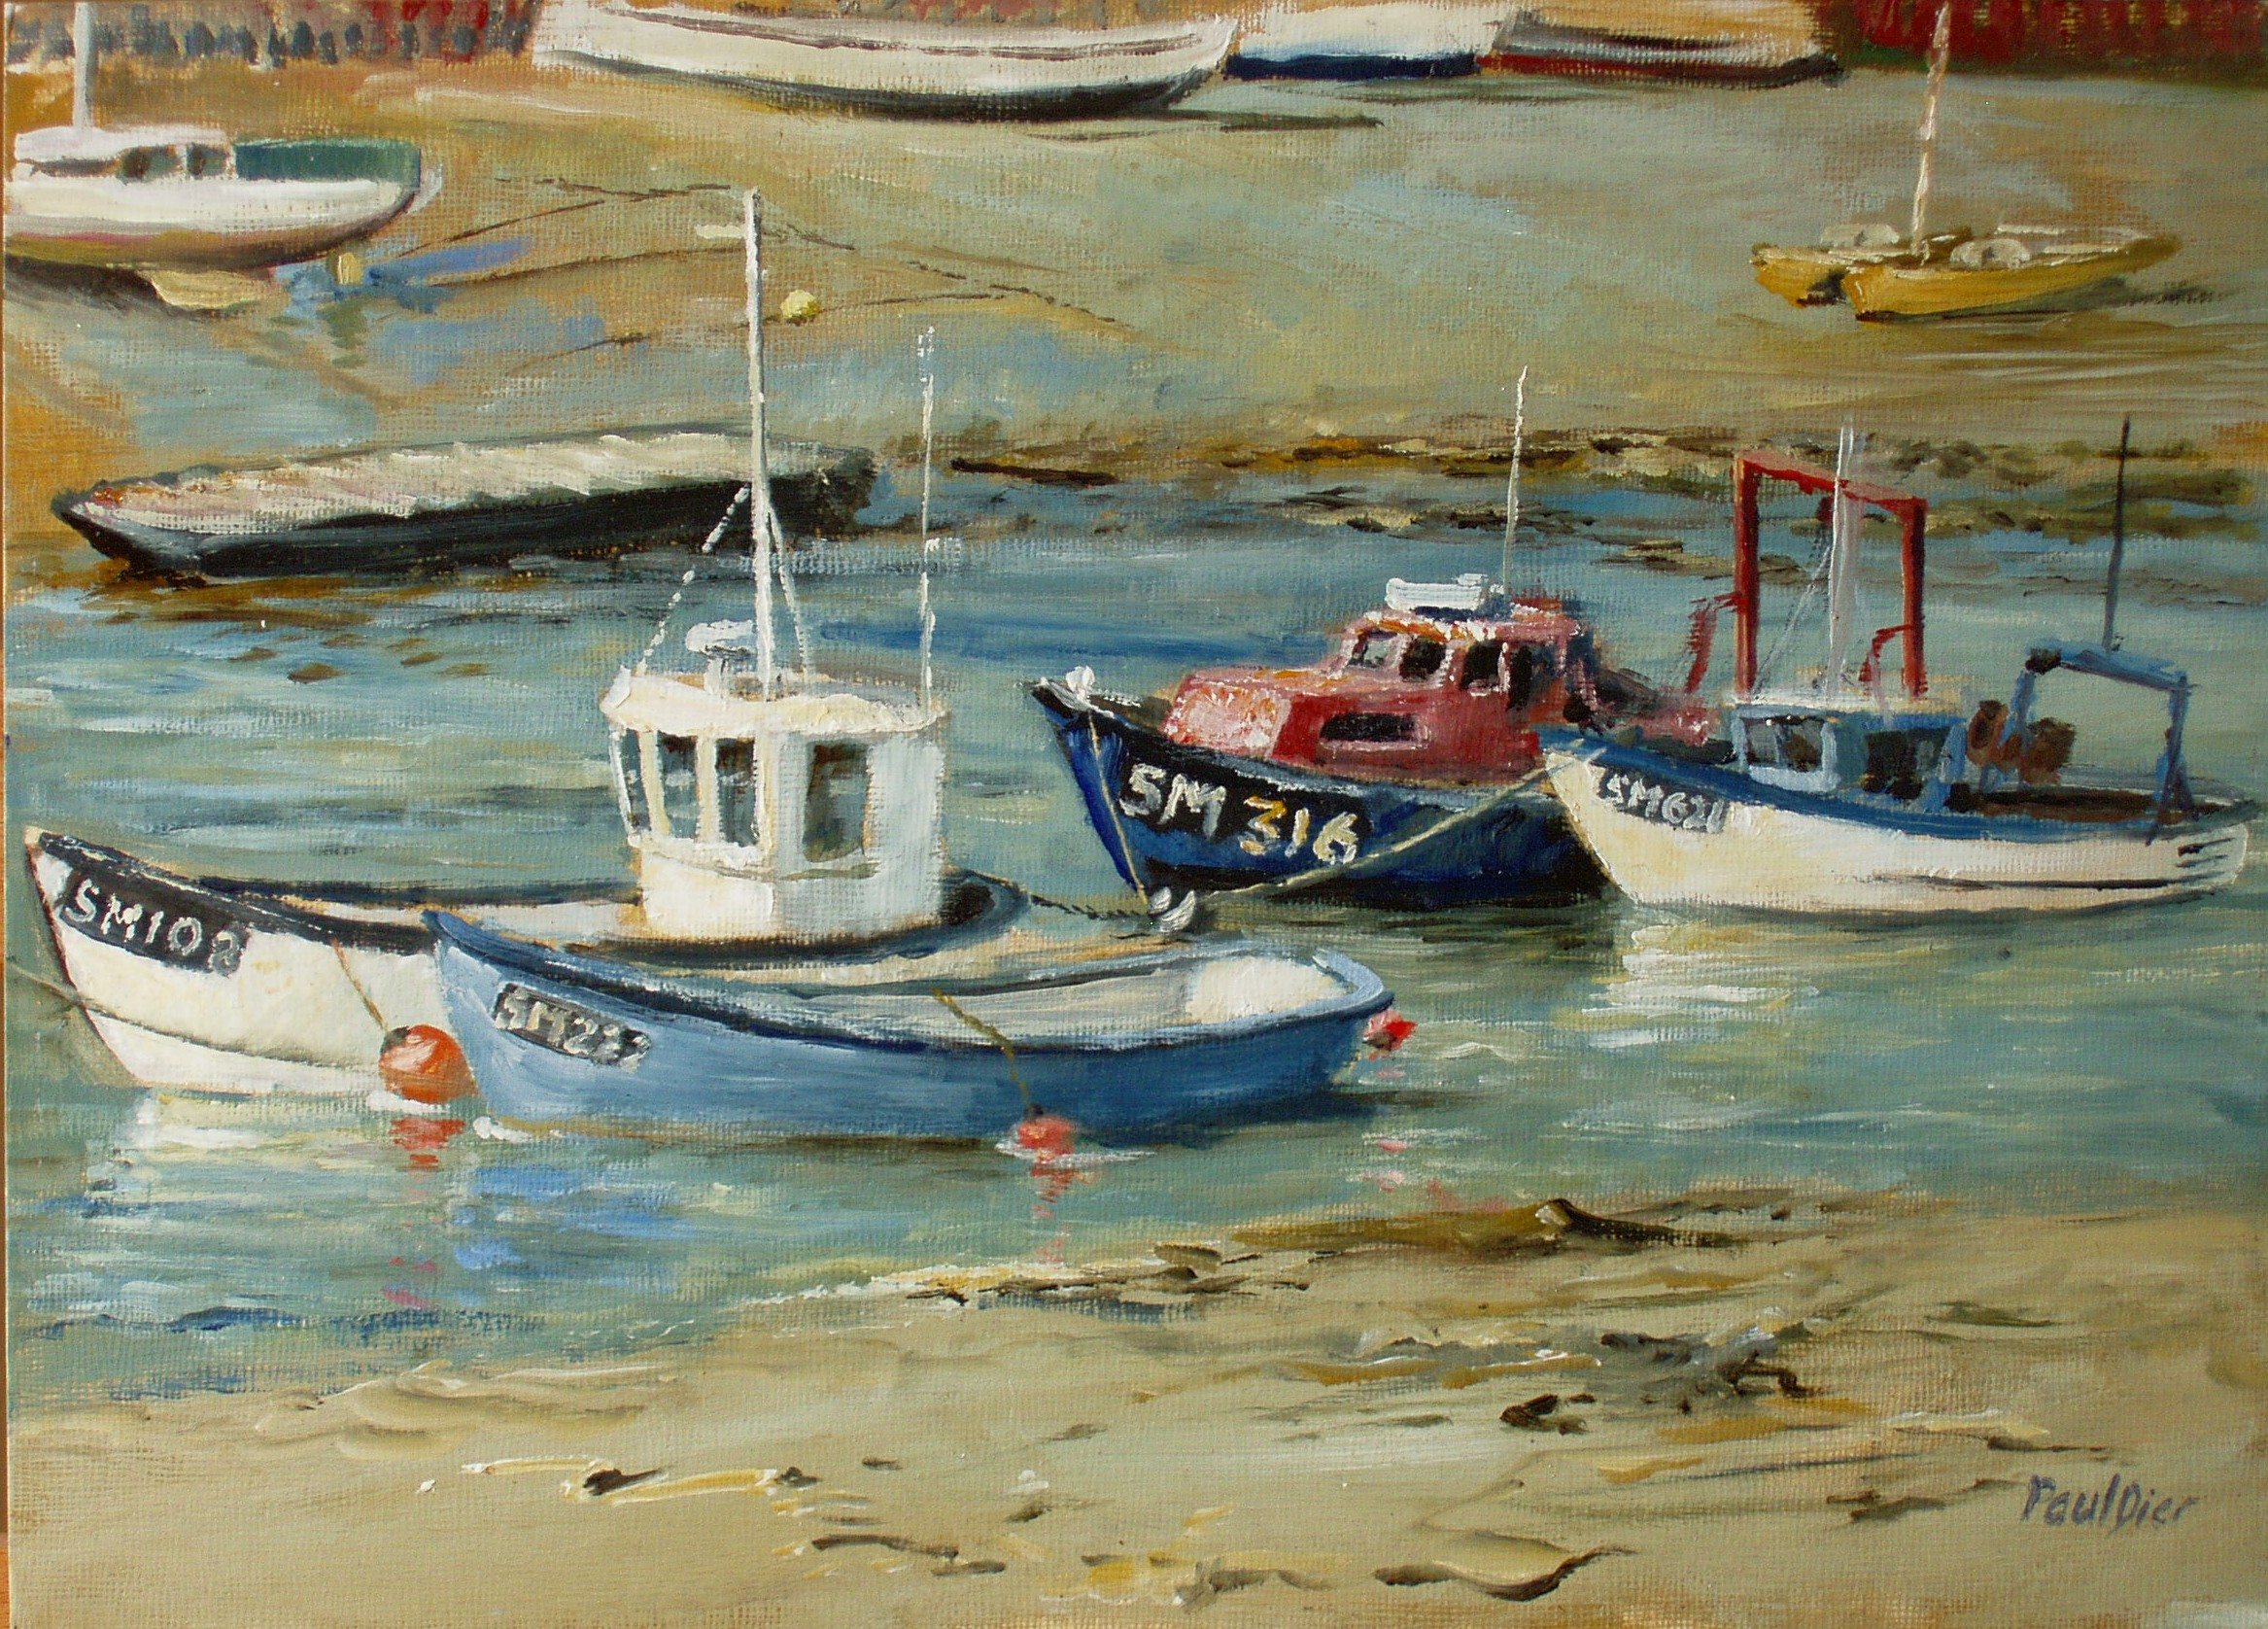 Paintings of the sussex coast by paul dier for Fishing boat painting